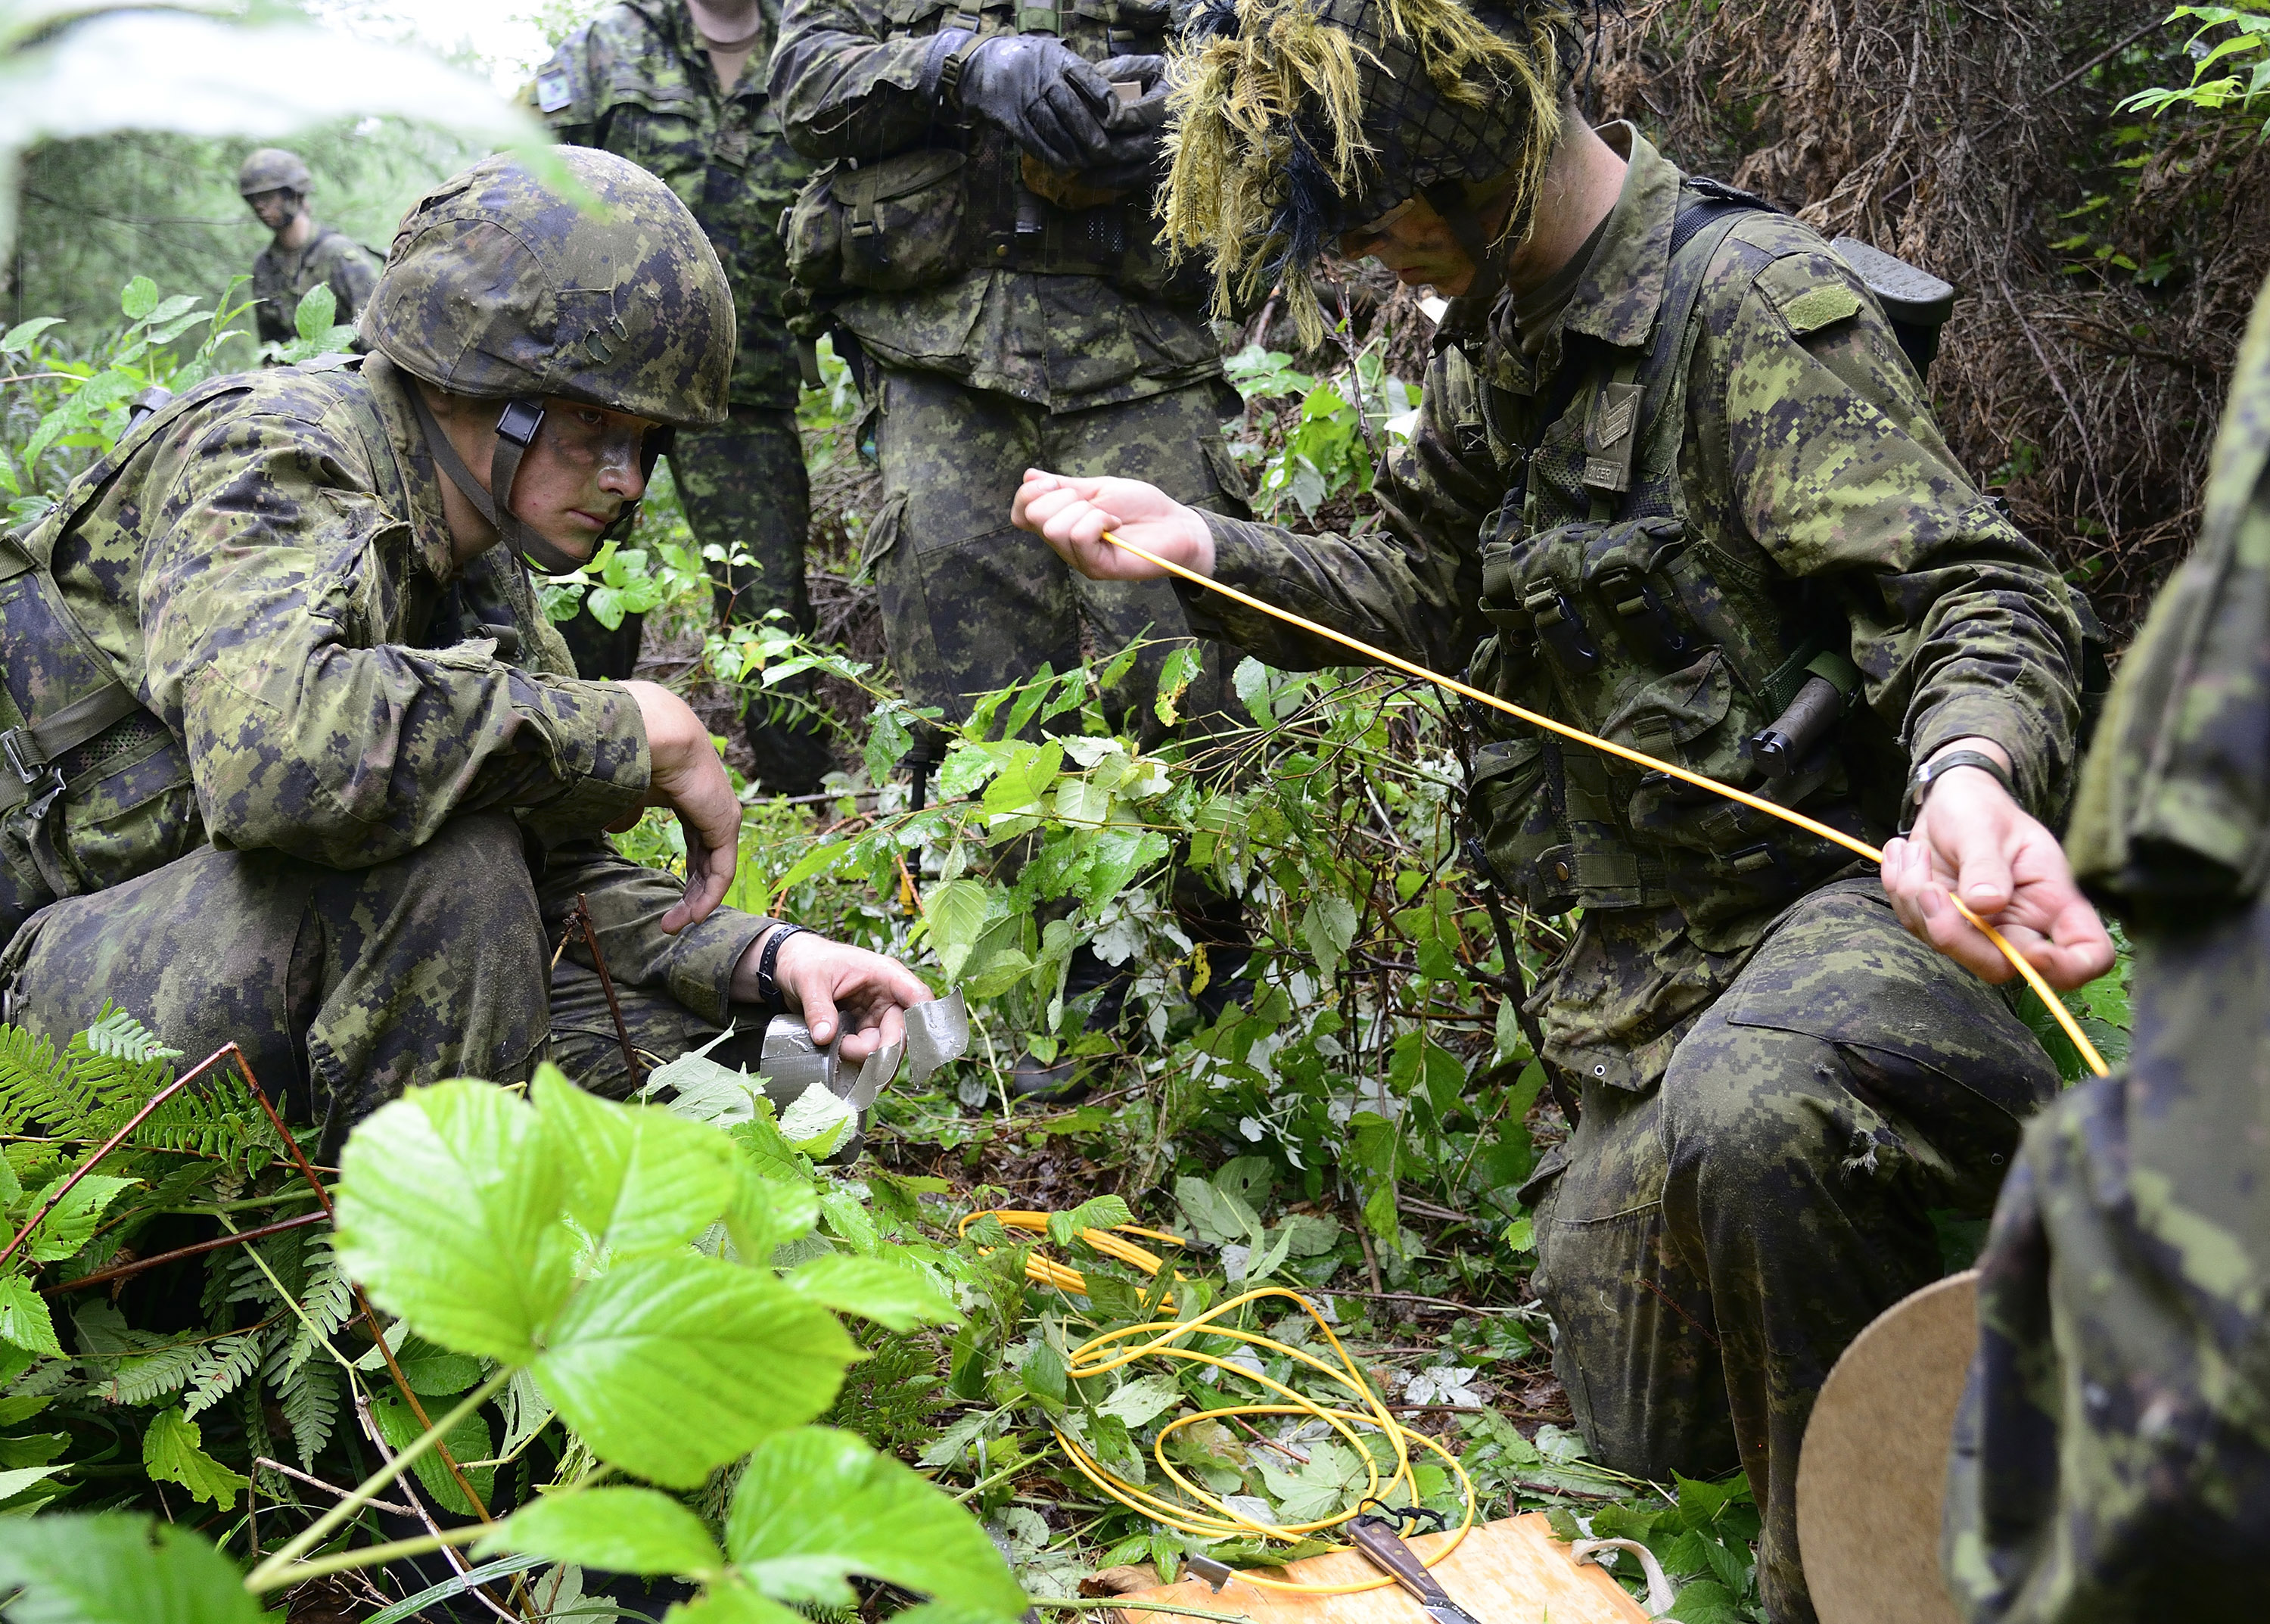 Sapper John Hiebert and Corporal Chase Kilbourne of 31 Combat Engineer Regiment (The Elgin's) cut detonating cord for initiating the Manufactured Charges (Beehives) during Exercise STALWART GUARDIAN on August 20, 2015 at Garrison Petawawa, ON.